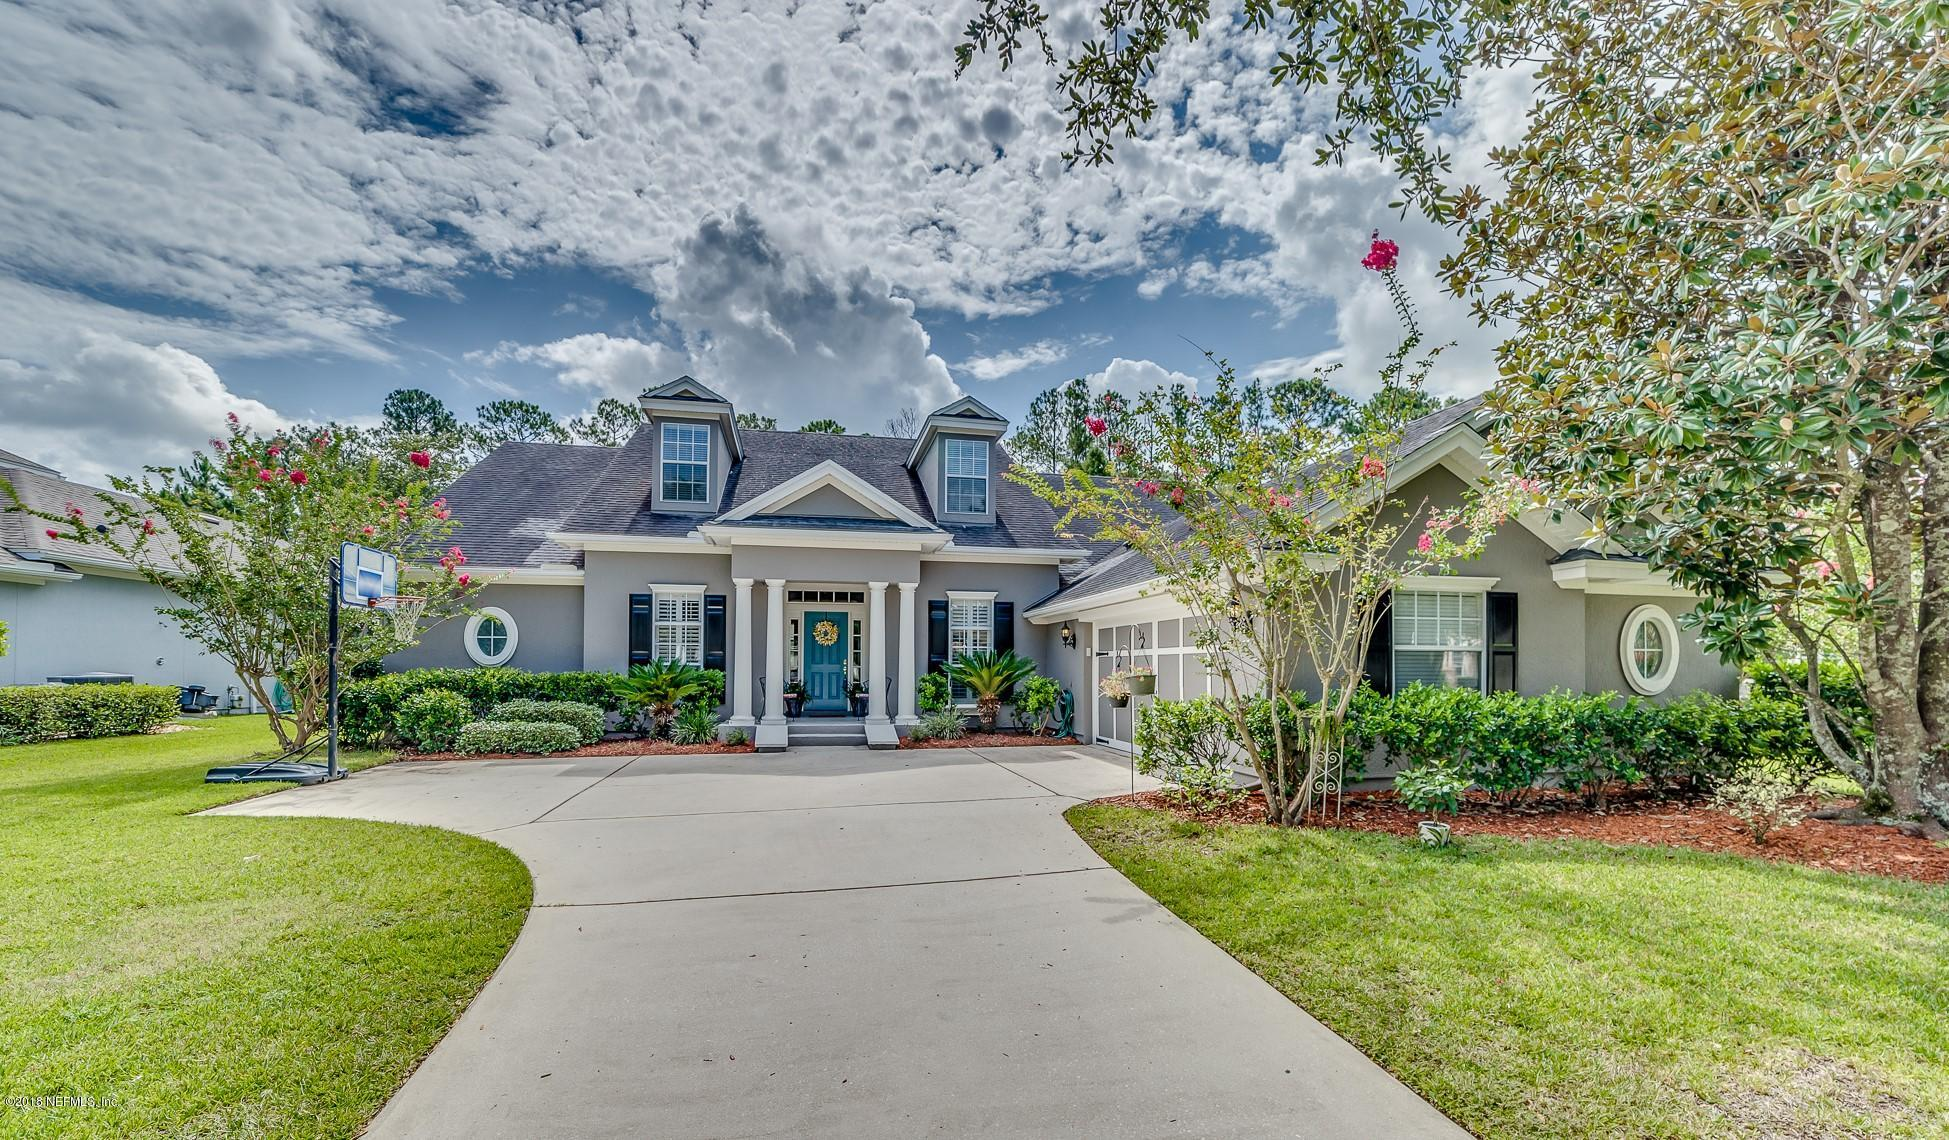 796 EAGLE POINT, ST AUGUSTINE, FLORIDA 32092, 5 Bedrooms Bedrooms, ,3 BathroomsBathrooms,Residential - single family,For sale,EAGLE POINT,950284